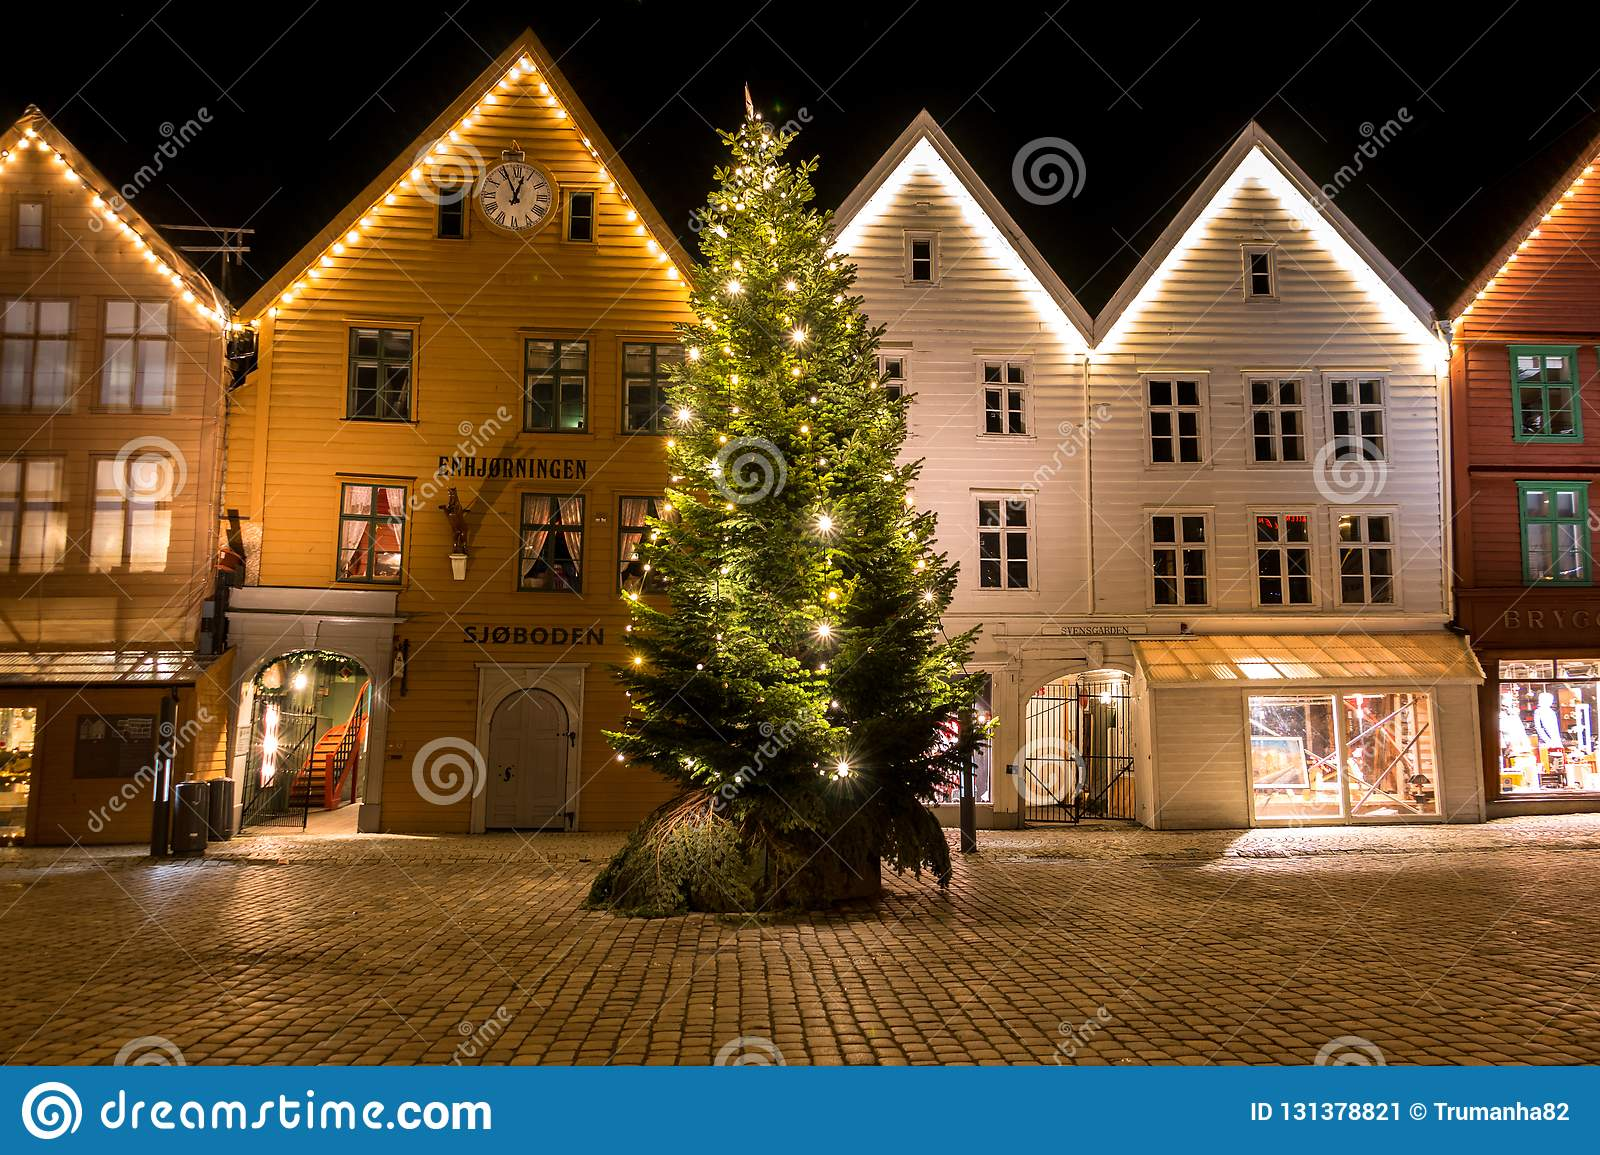 City Scene With A Glittering Christmas Tree In Front Of